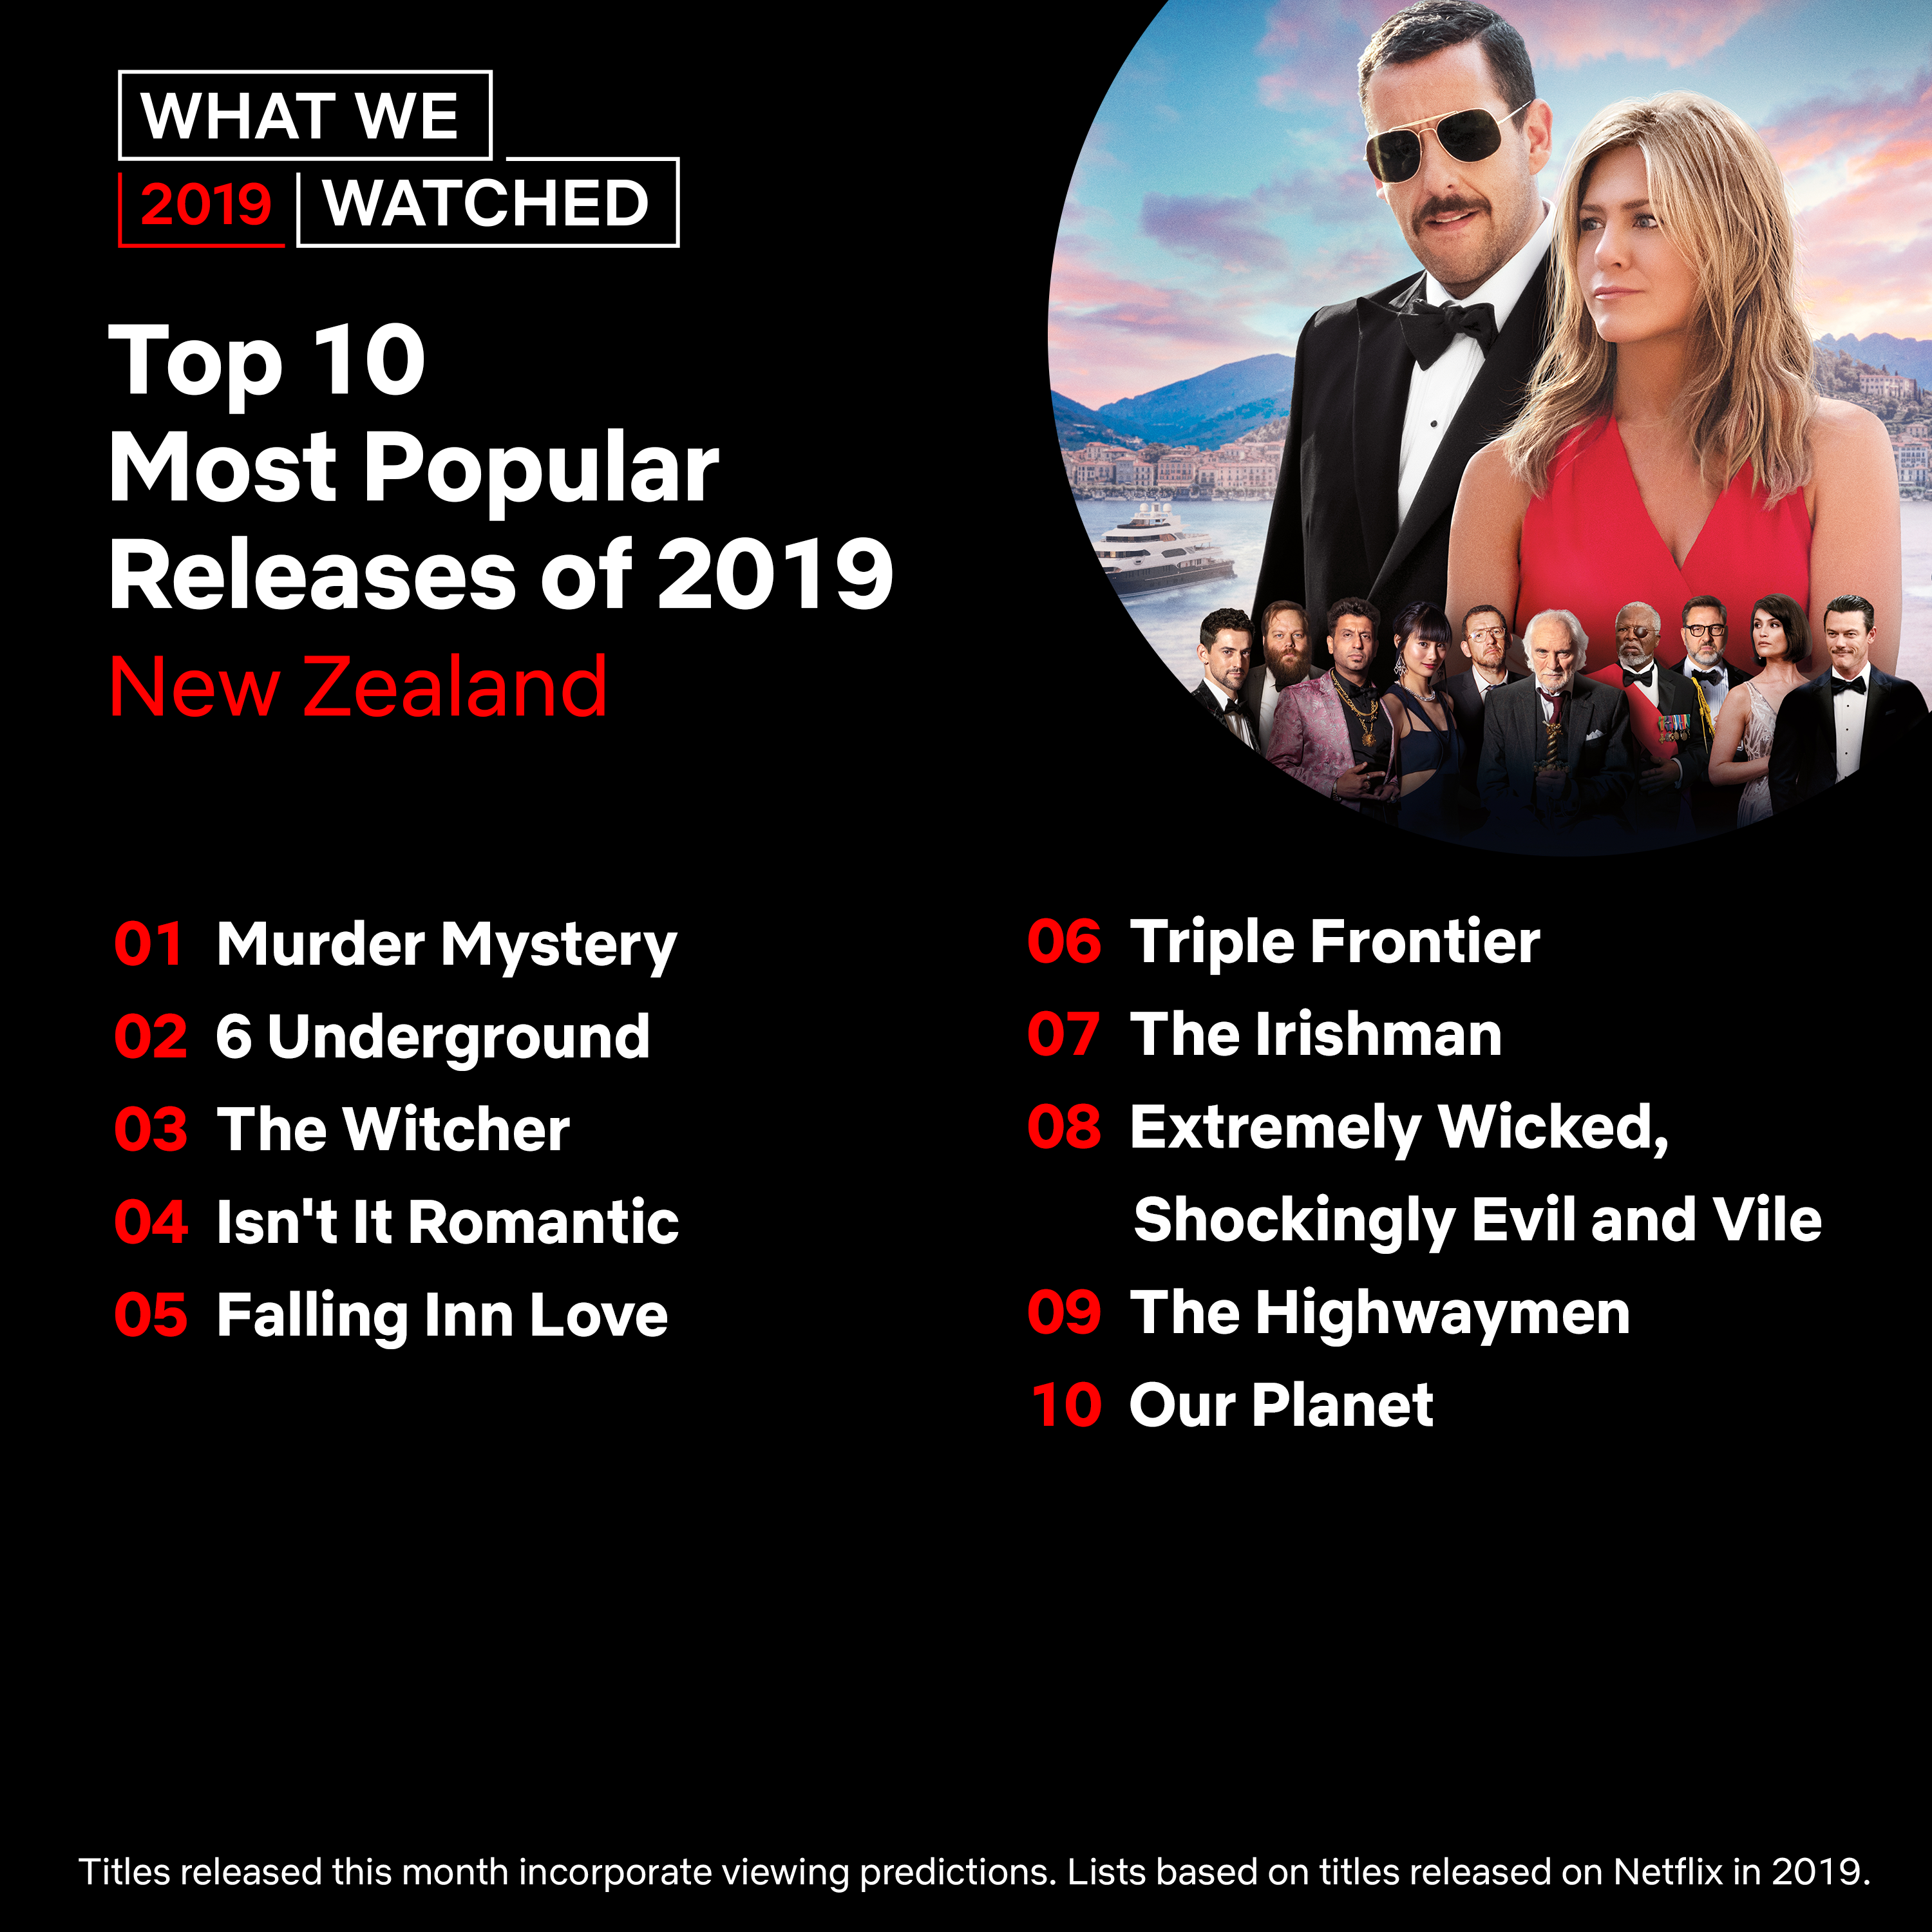 Netflix says 'Murder Mystery' its most popular USA release in 2019